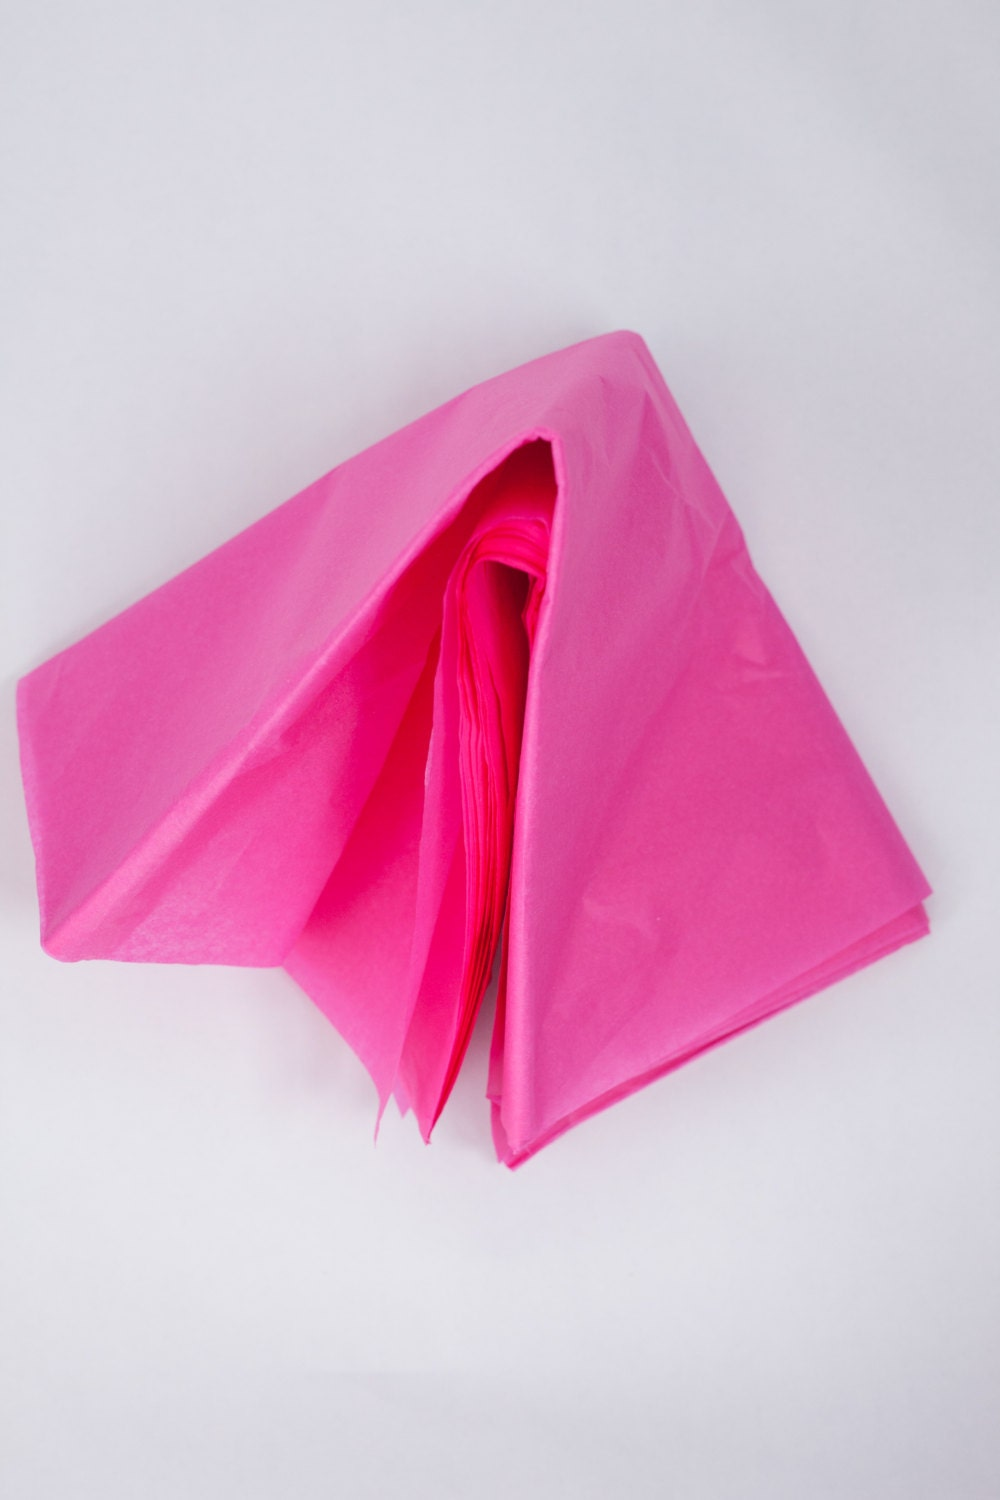 hot pink tissue paper Pink order bulk tissue paper from bags & bows and feel confident you have quality supplies when you need them tissue paper is available in many colors and patterns.